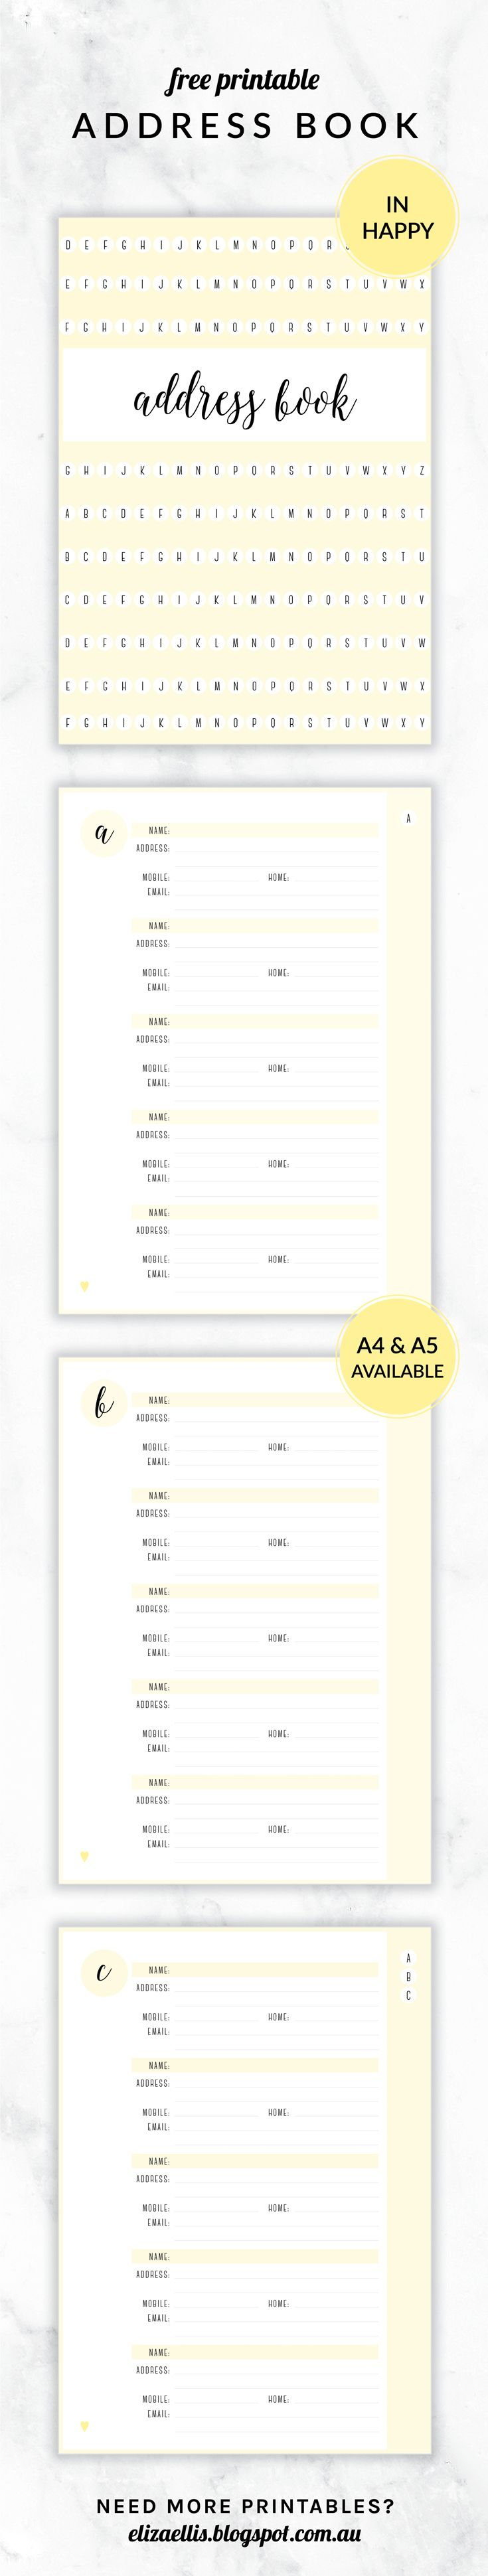 Free Printable Irma Address Book // Eliza Ellis. Available in 6 colors and in both A4 and A5 sizes.